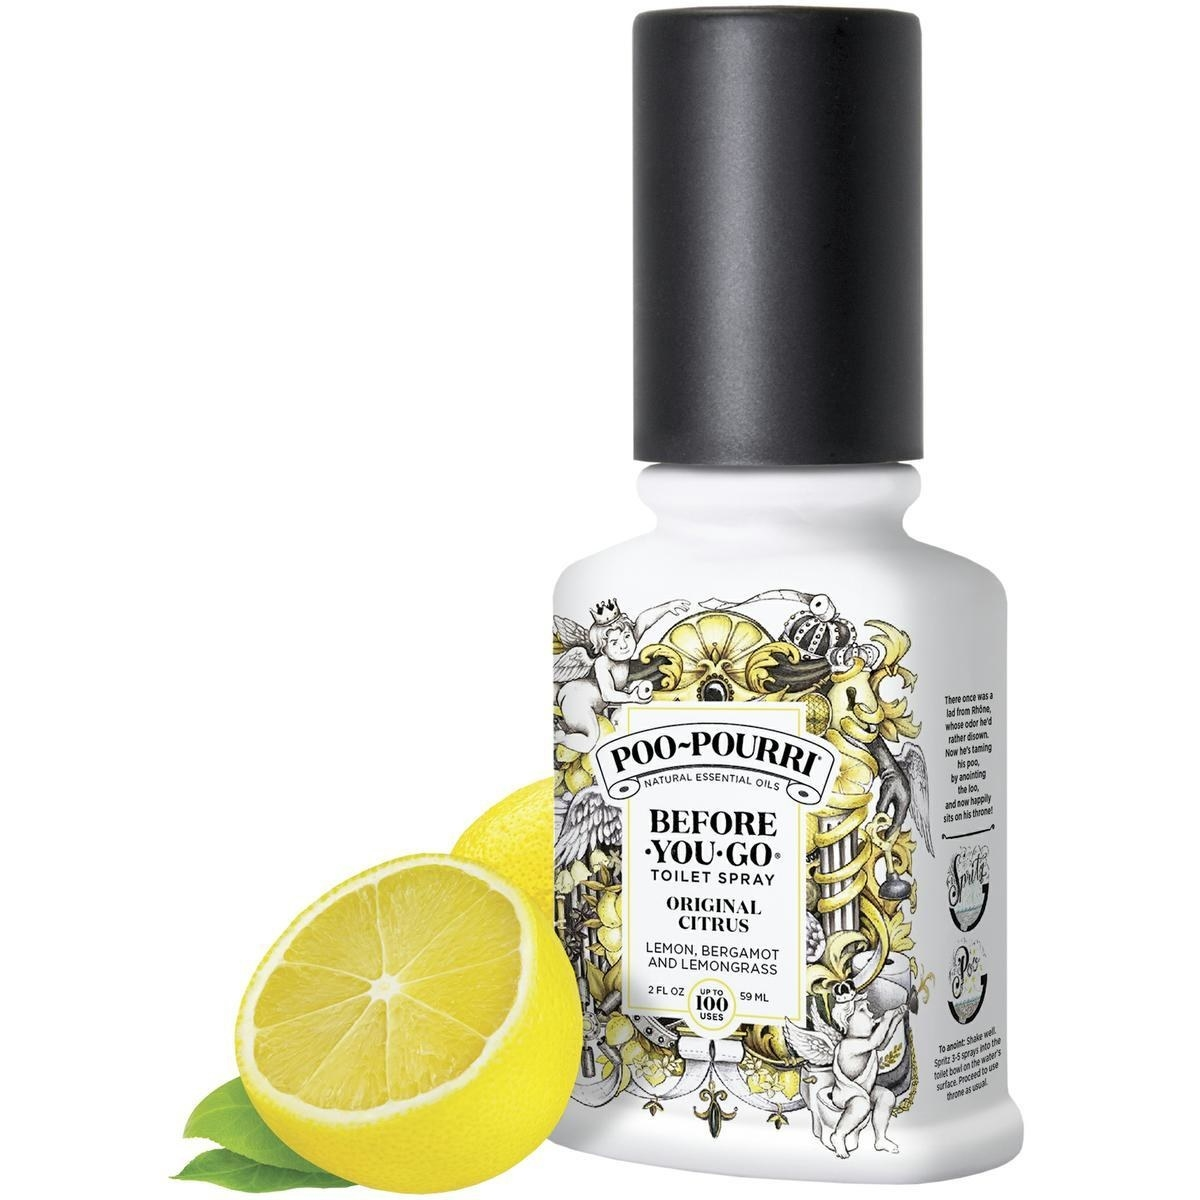 An image of a bottle of Poo-Pourri